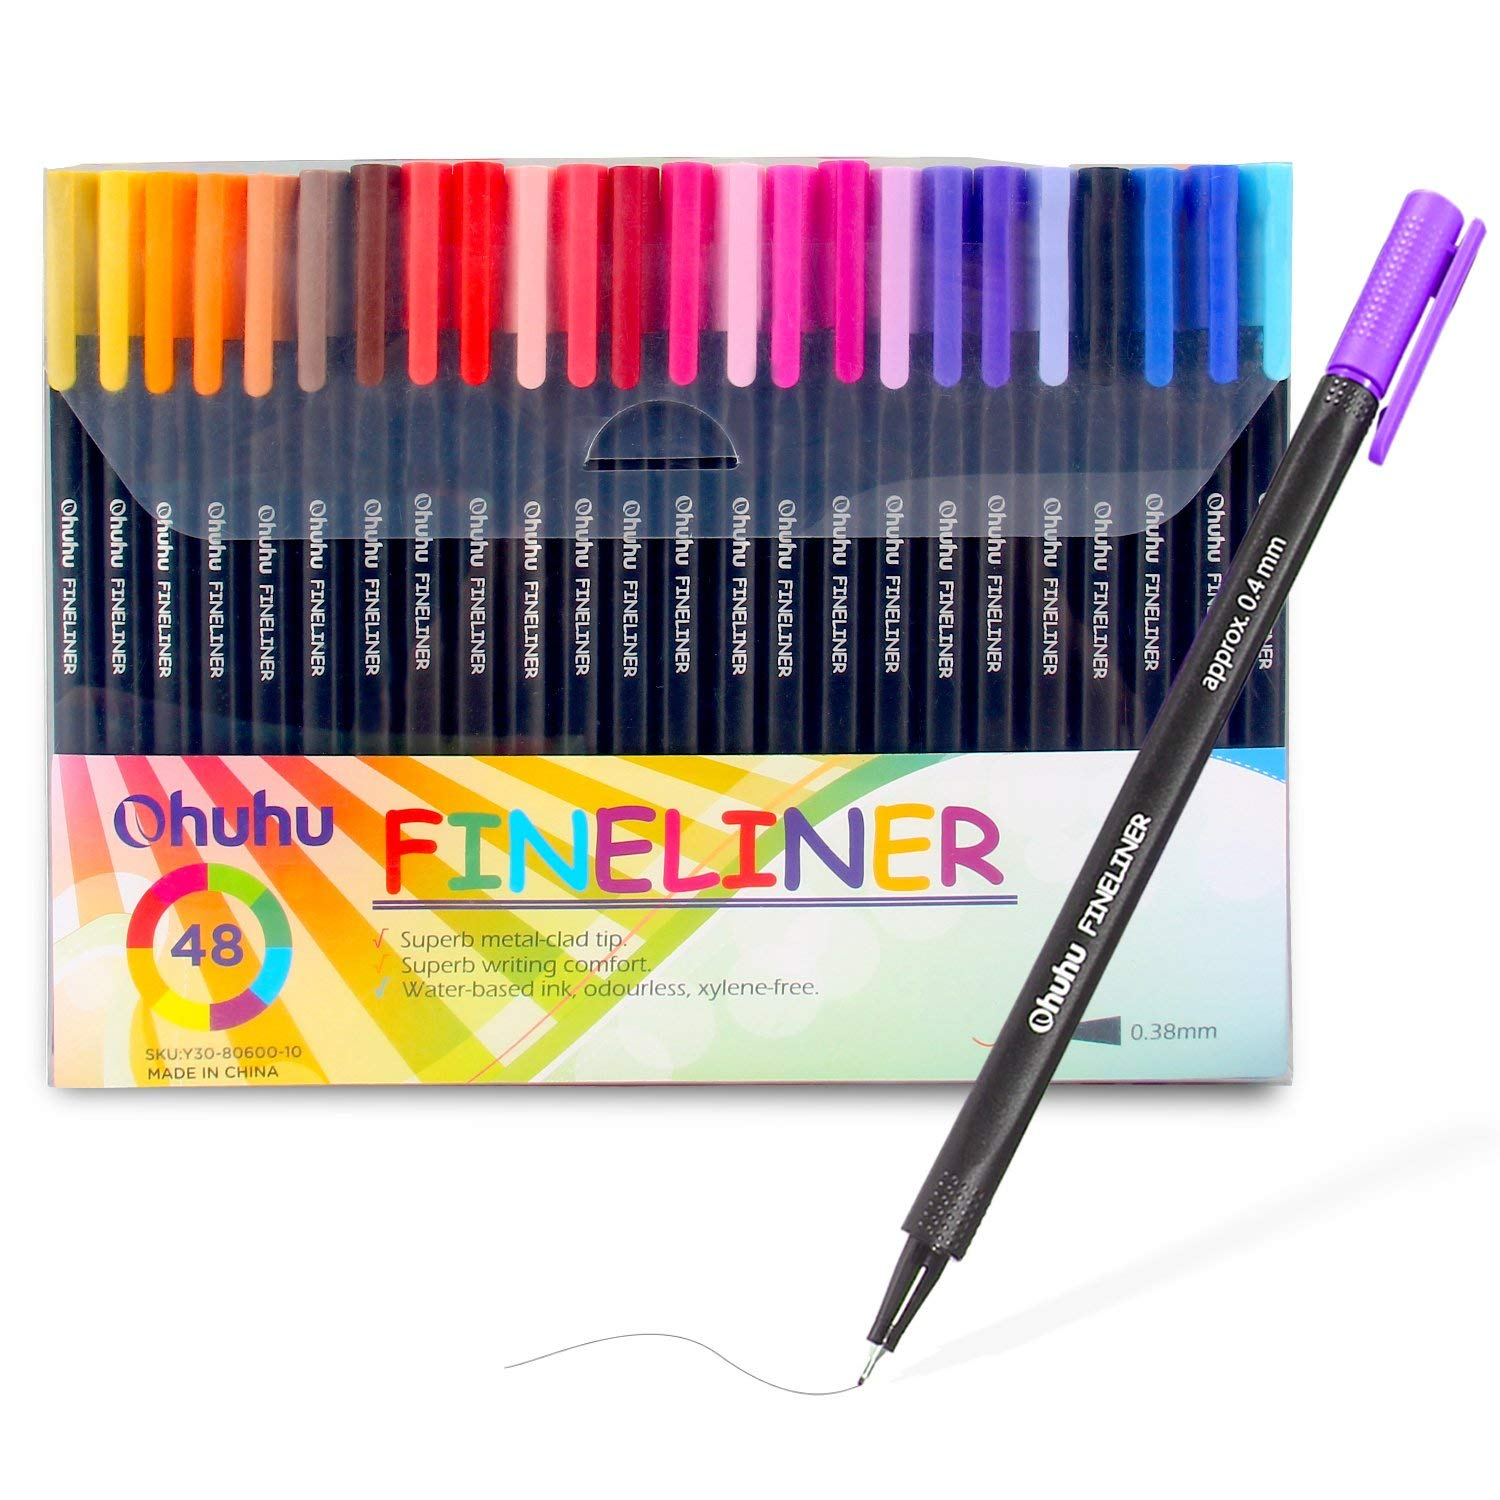 Ohuhu 48 Colors Fineliner Pens, 0.4mm Colored Fine Line Marker Marking Pen for Journal Book Sketch Drawing Fine Liner Coloring Book, Back to School Art Supplies